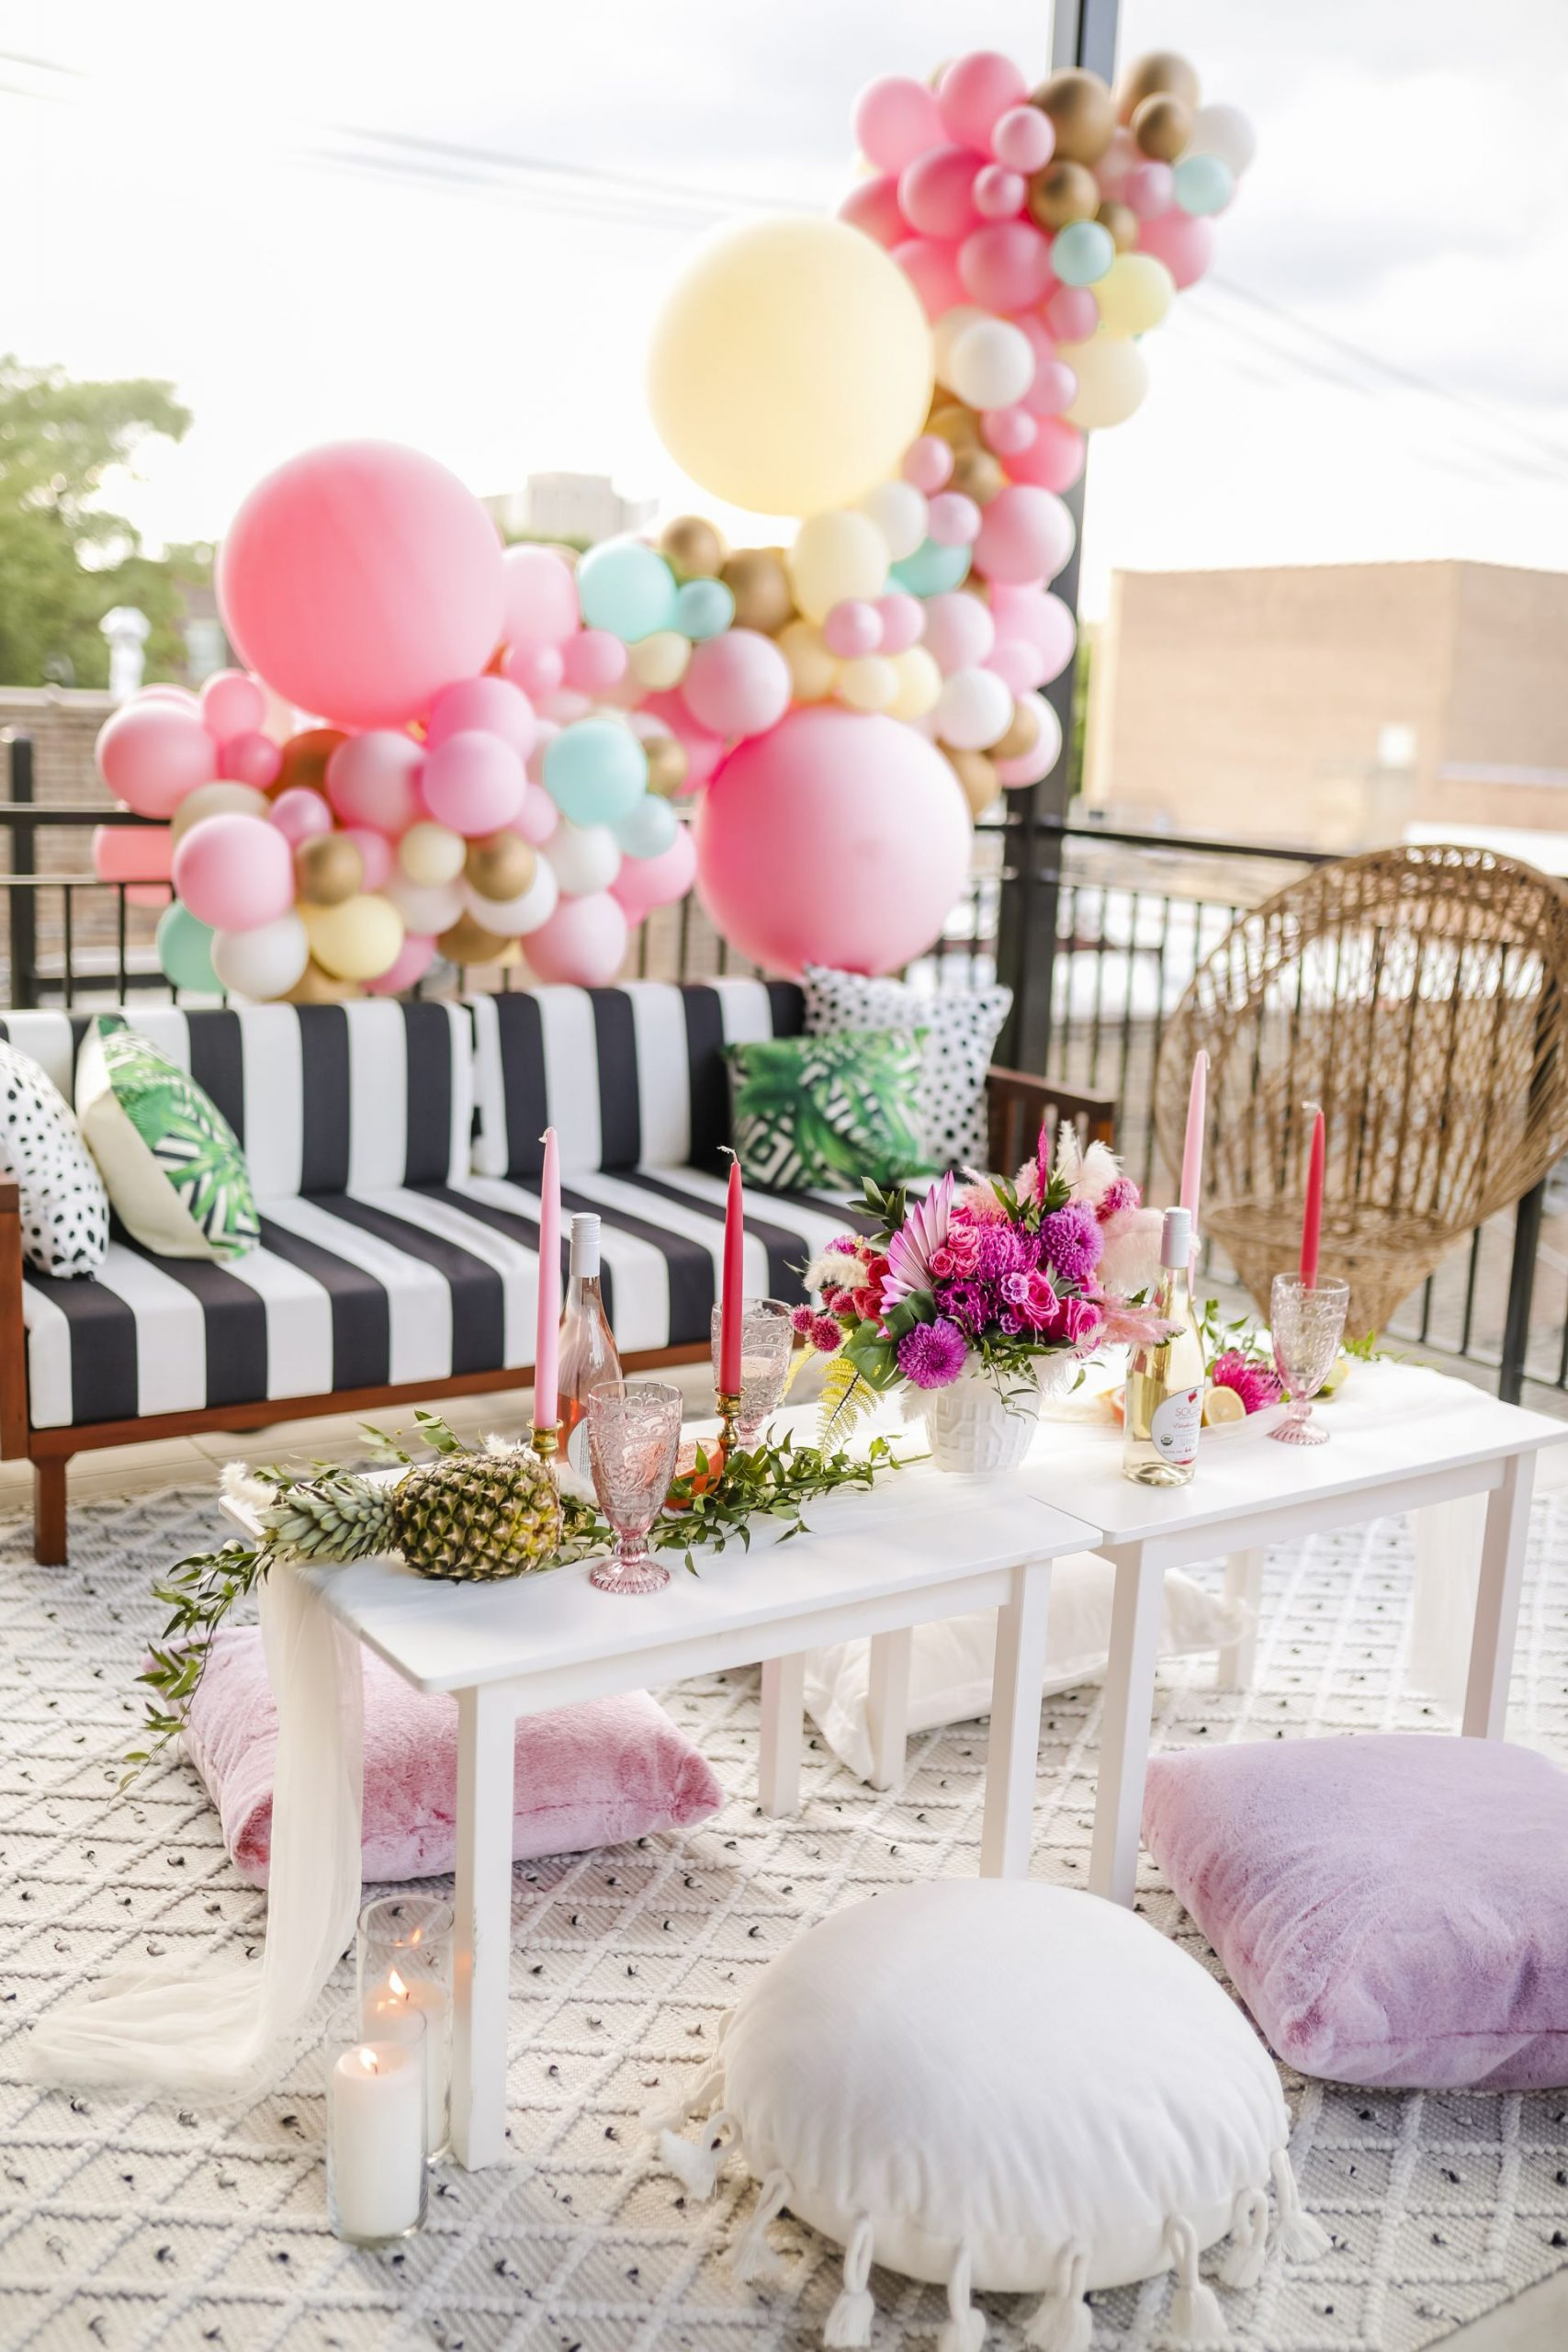 glam patio insp, glam patio party, instagrammable parties, best patio party inspiration, jennifer worman home, stripe couch patio, best patio decor, best patio design, balloon arch, pink party inspiration, pastel balloon arch